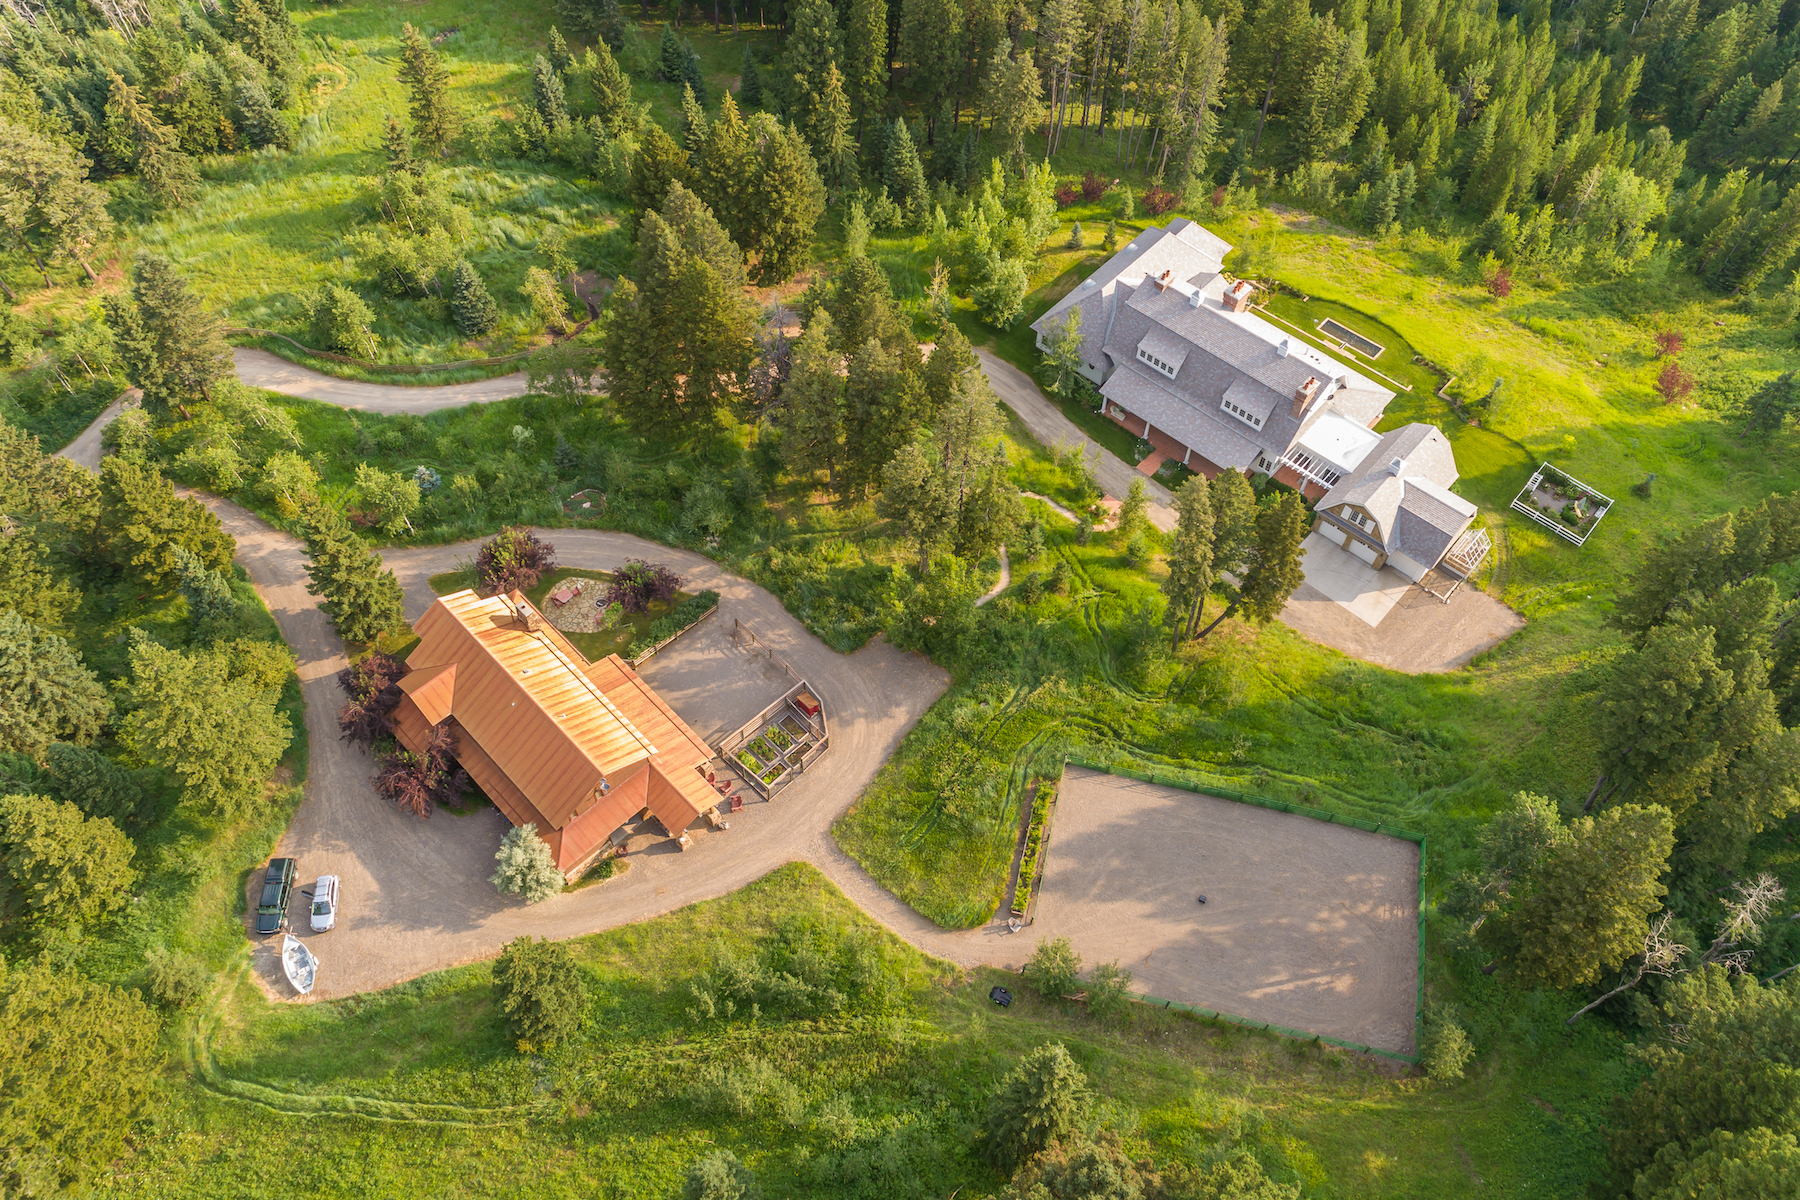 Single Family Homes for Sale at Elegant English-Inspired Country House 950 Martinez Spring Road Bozeman, Montana 59718 United States